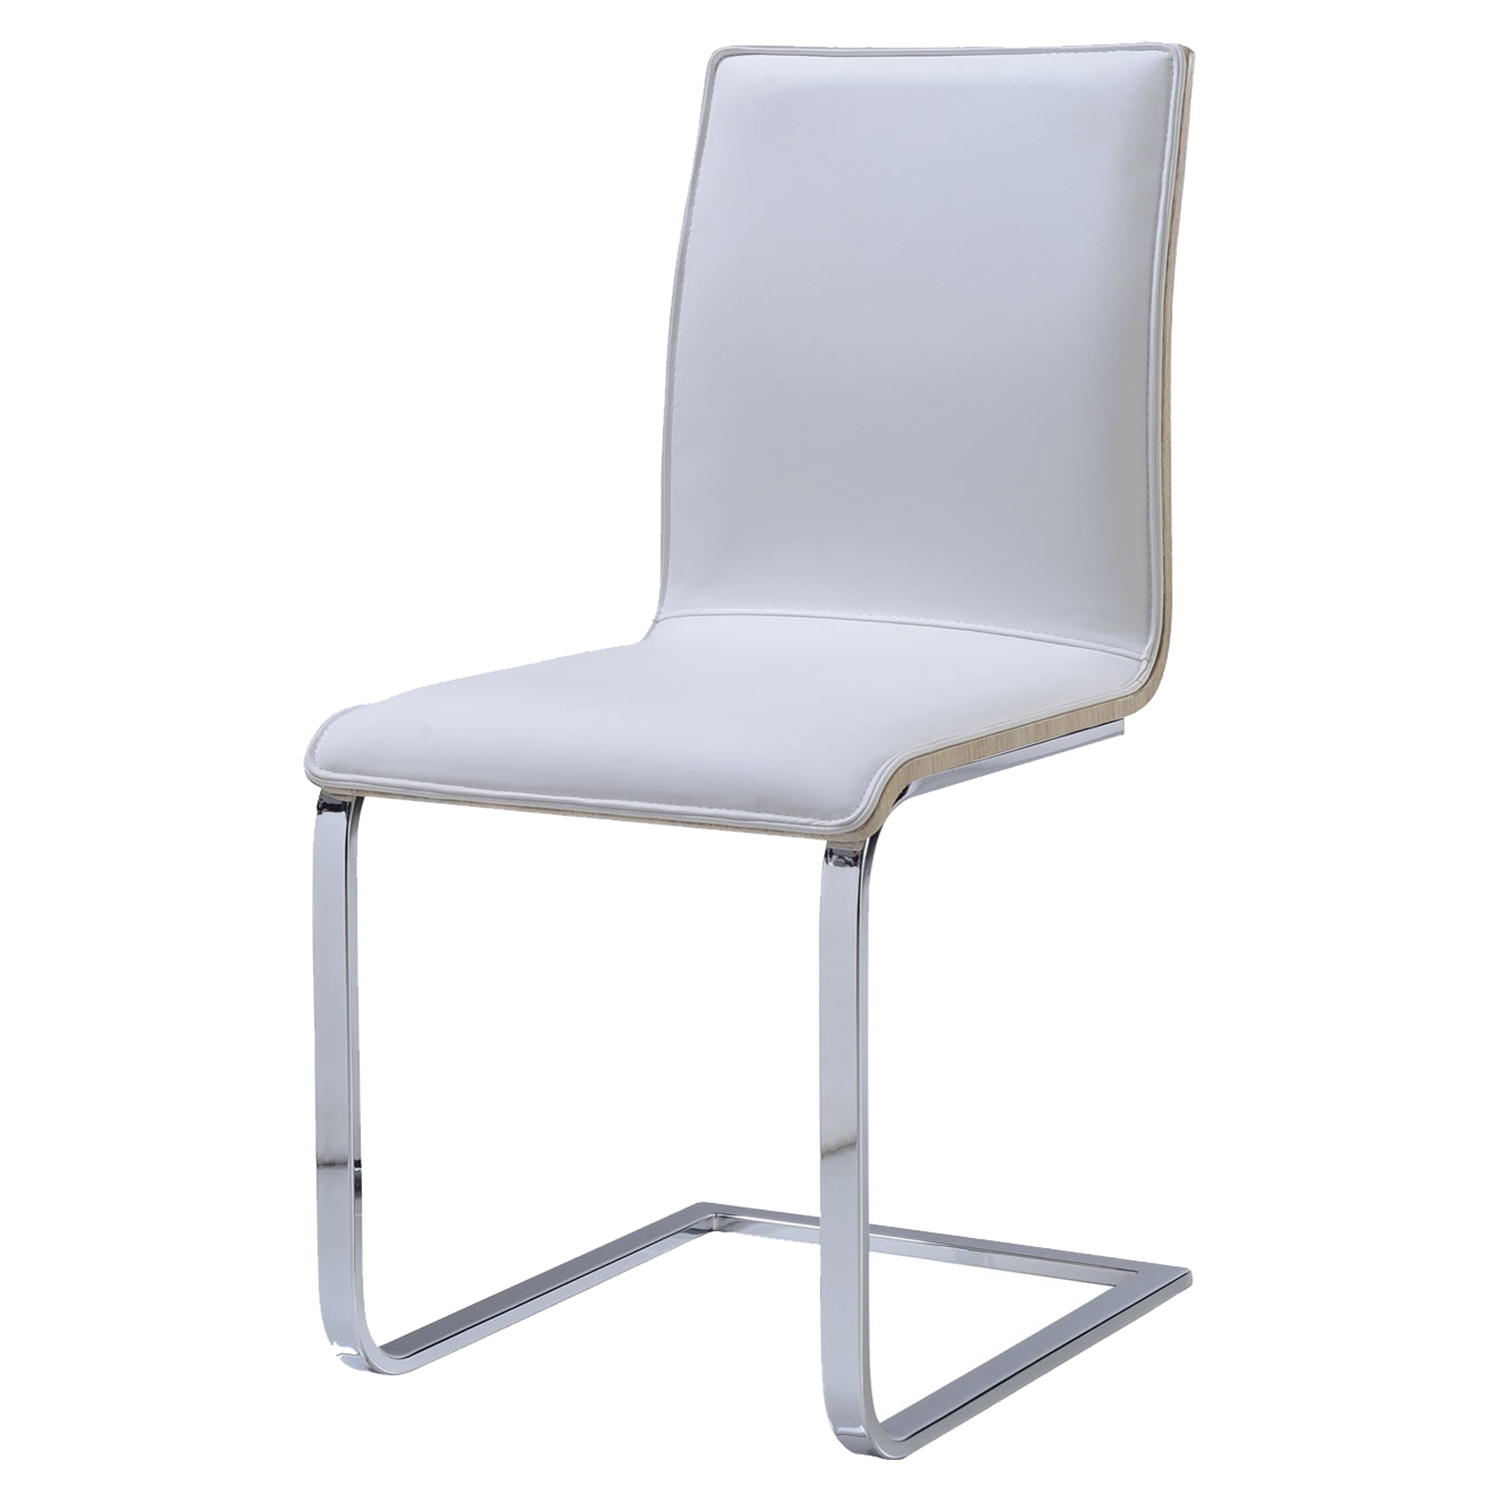 Arianna Dining Chair in White - GLO-D2123DC